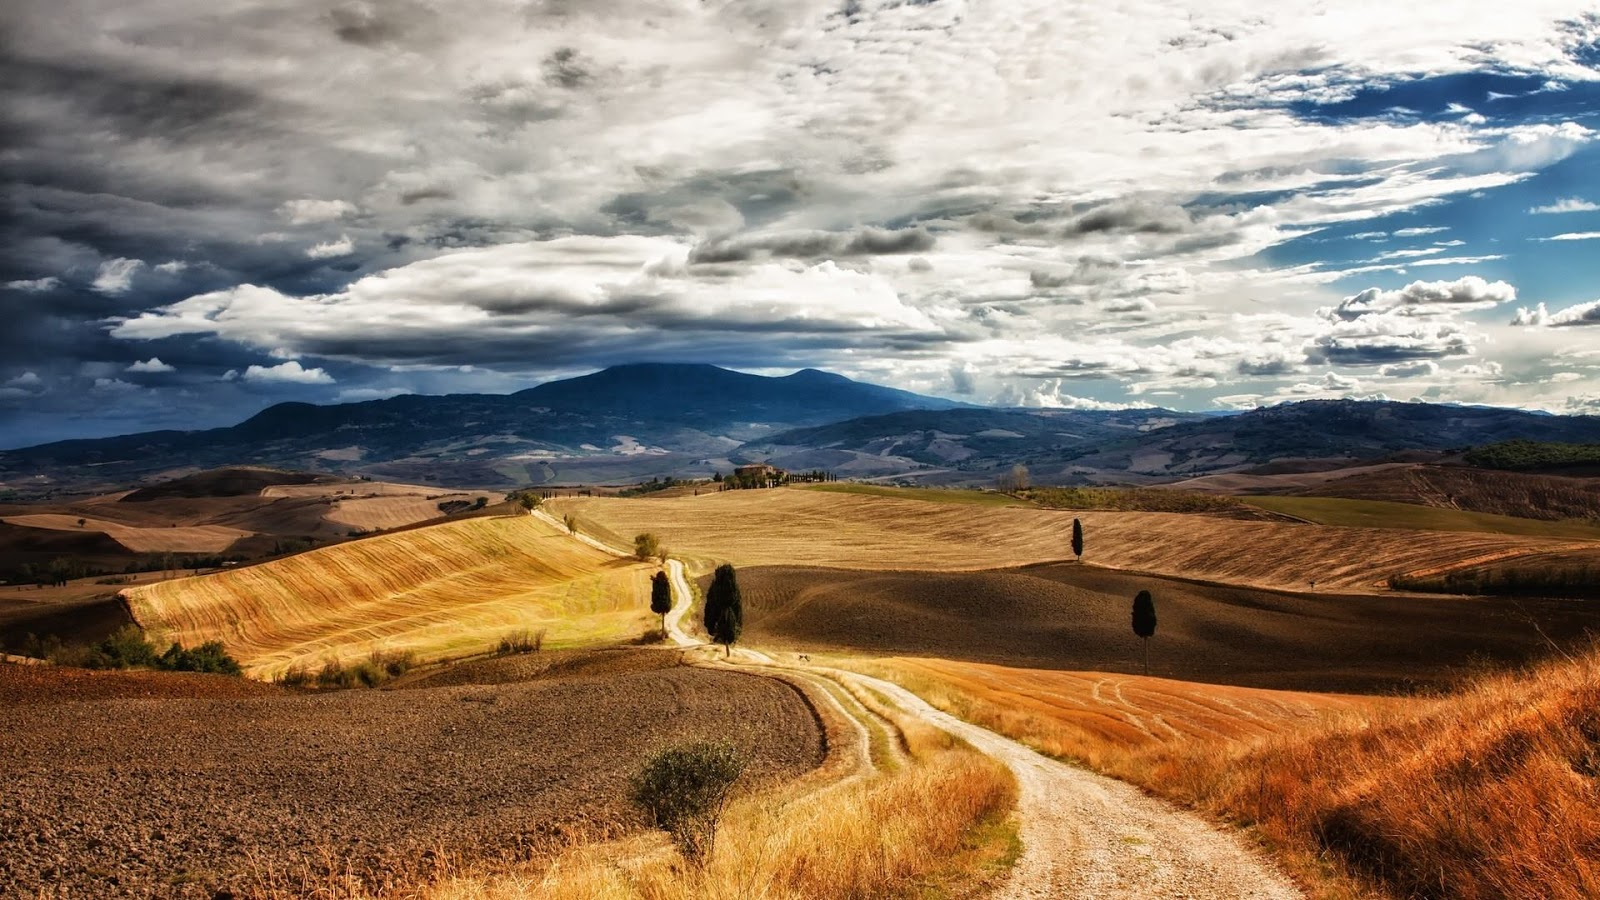 We do not know what lies ahead for us on the Camino or this journey they call life. Photo: © Authentic Journeys.com. Unauthorized use is prohibited.